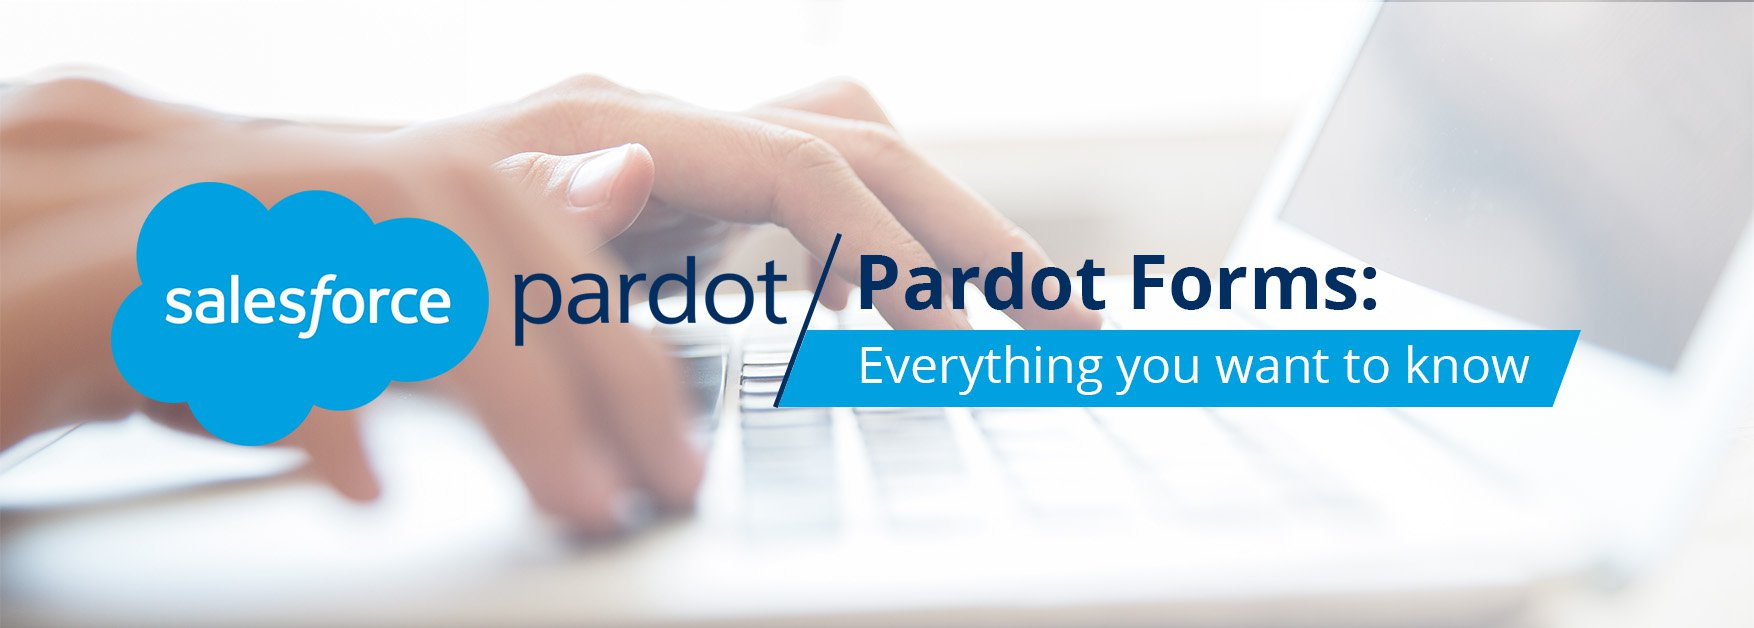 Pardot Forms: Everything You Wanted To Know